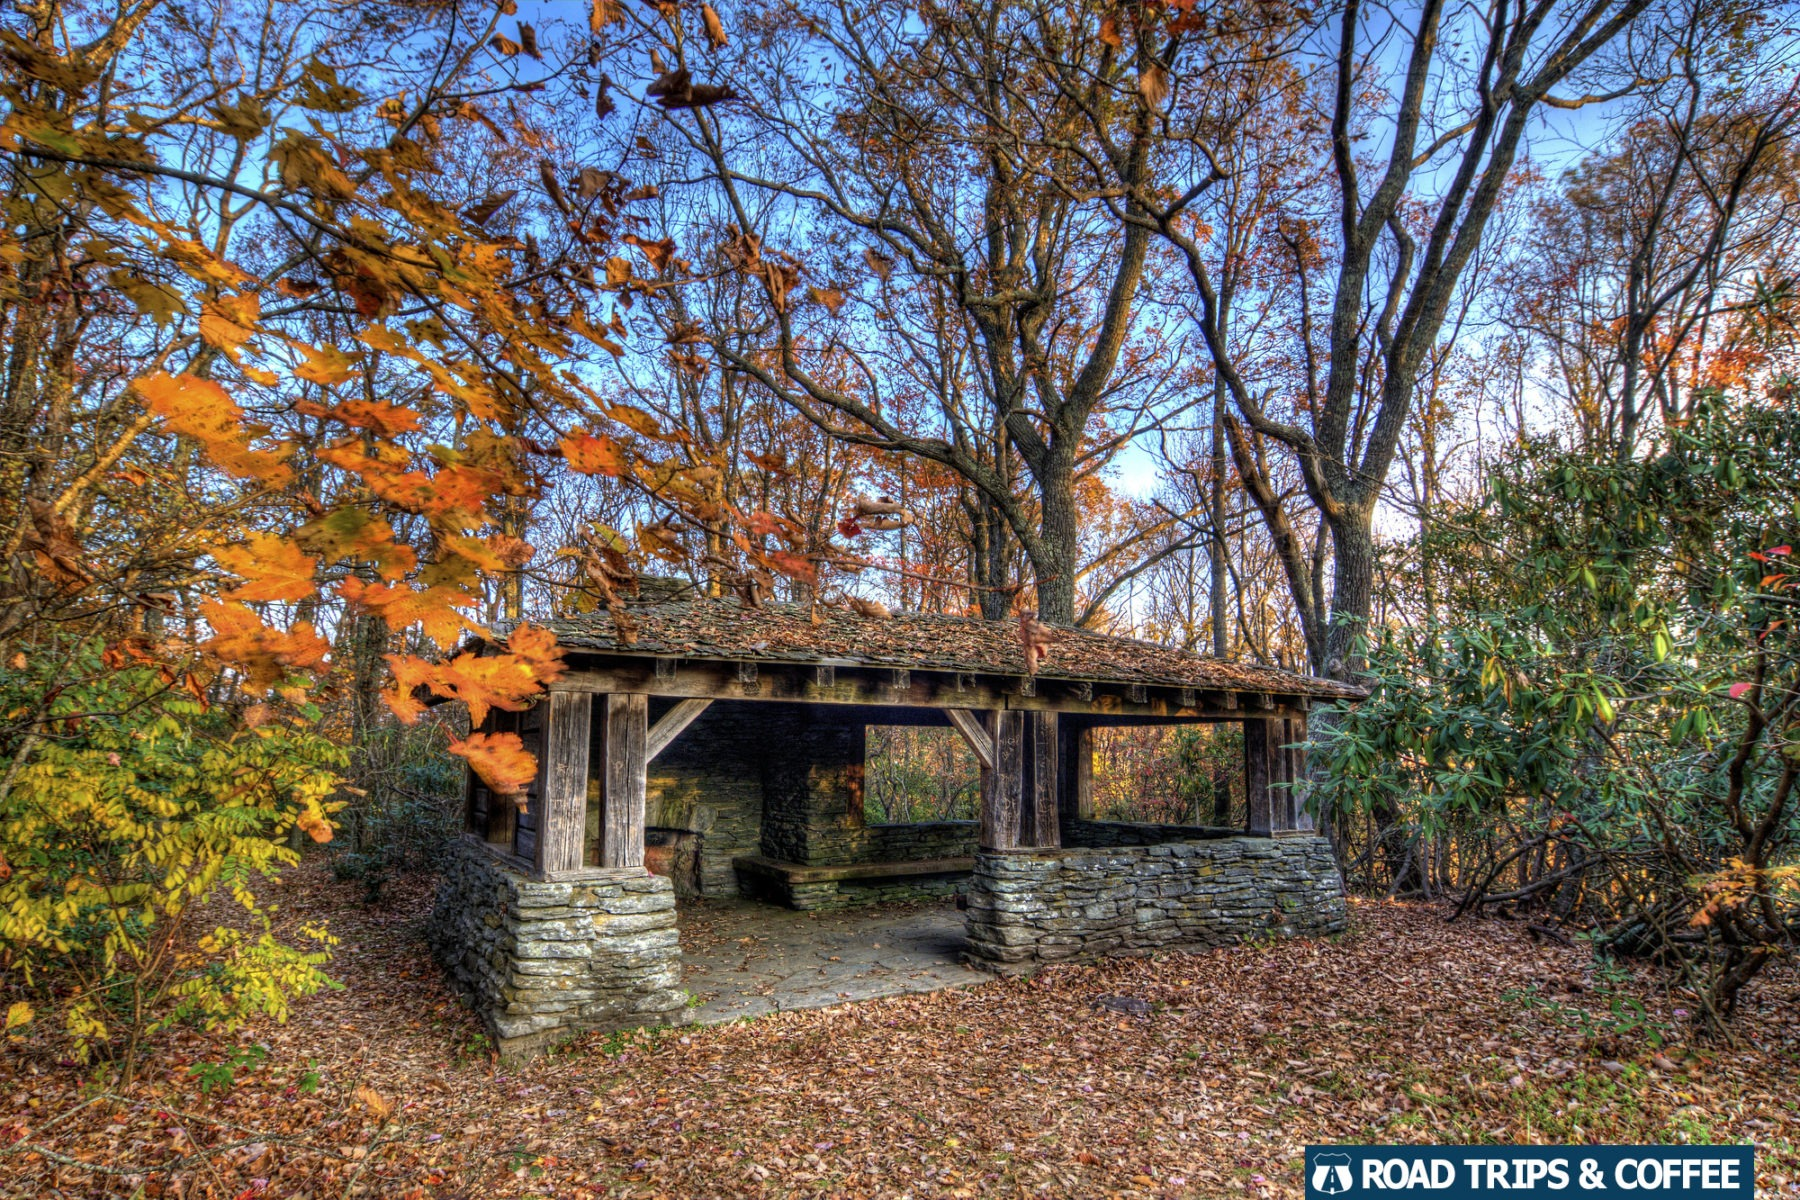 A rustic covered shelter surrounded by trees and fall colors at Cumberland Knob Recreation Area on the Blue Ridge Parkway in North Carolina